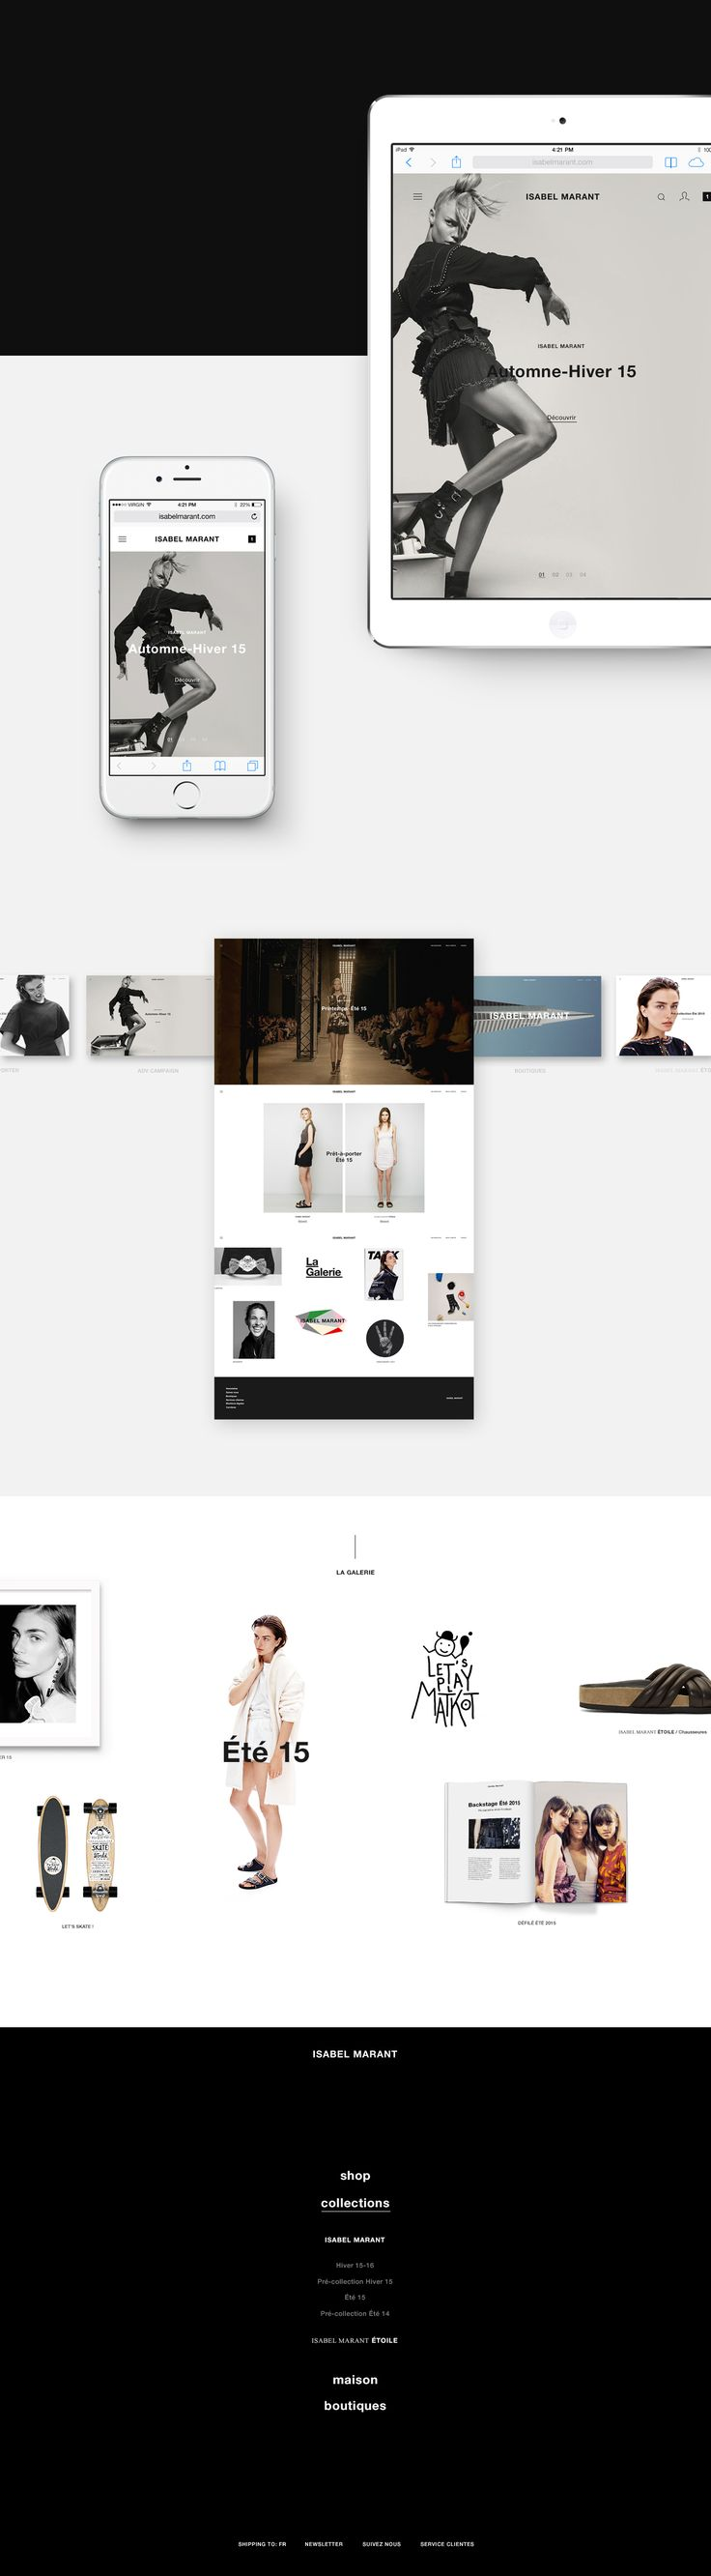 Isabelmarant.com - creative website proposal